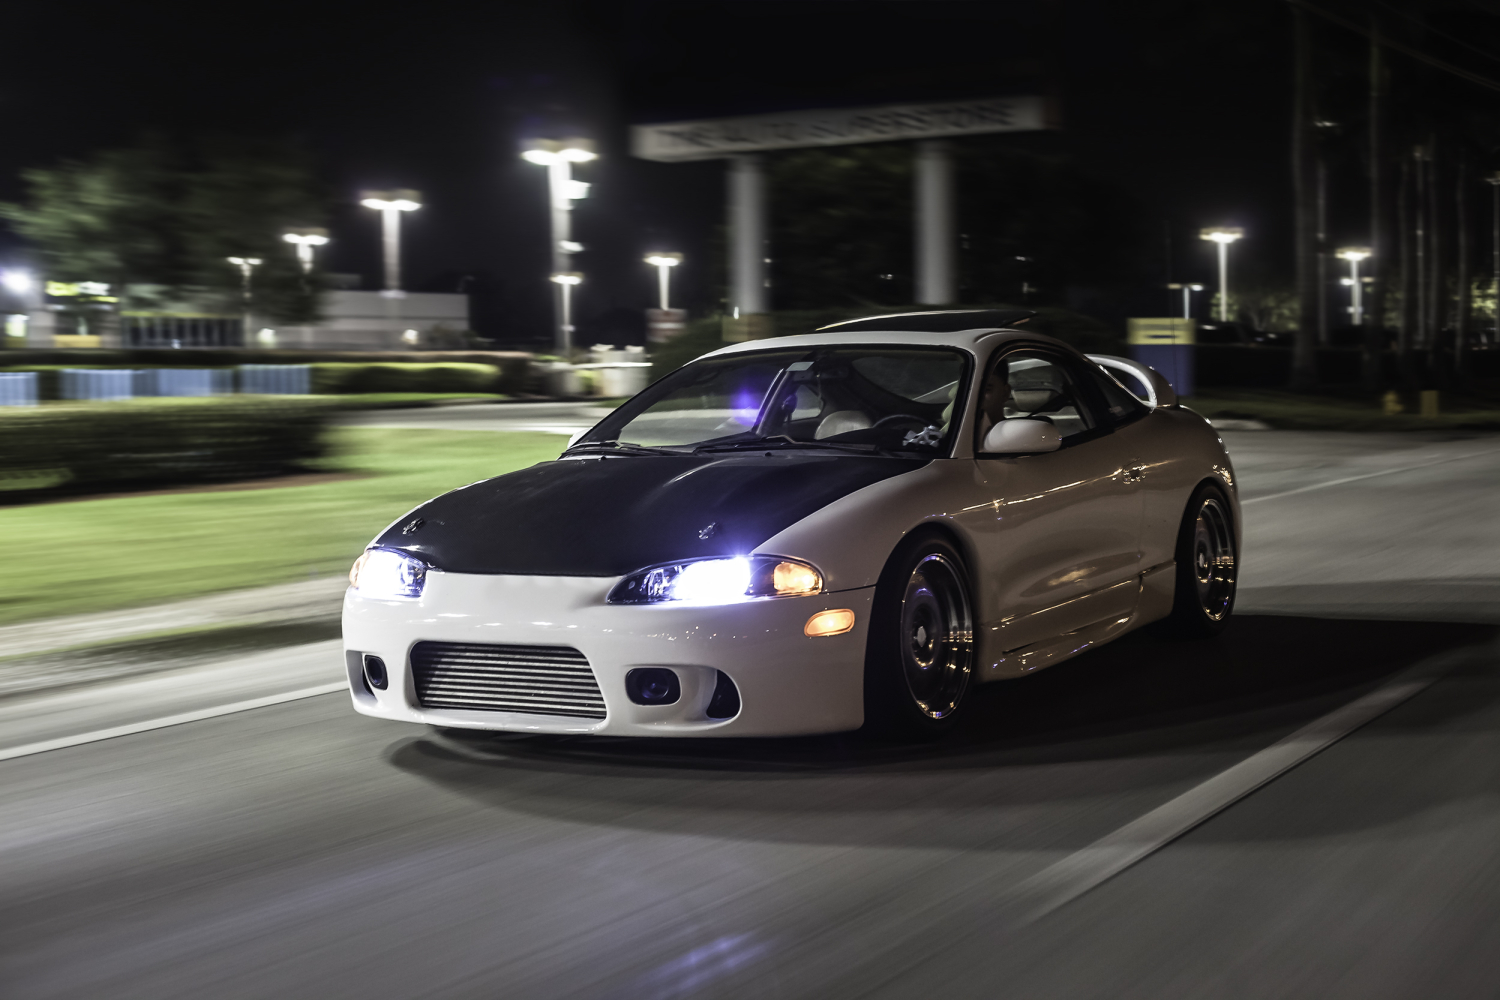 600awhp on a stock, 2.0L bottom end. That's the power of tuning. | image: Christian Saldana, lowerklasse.com